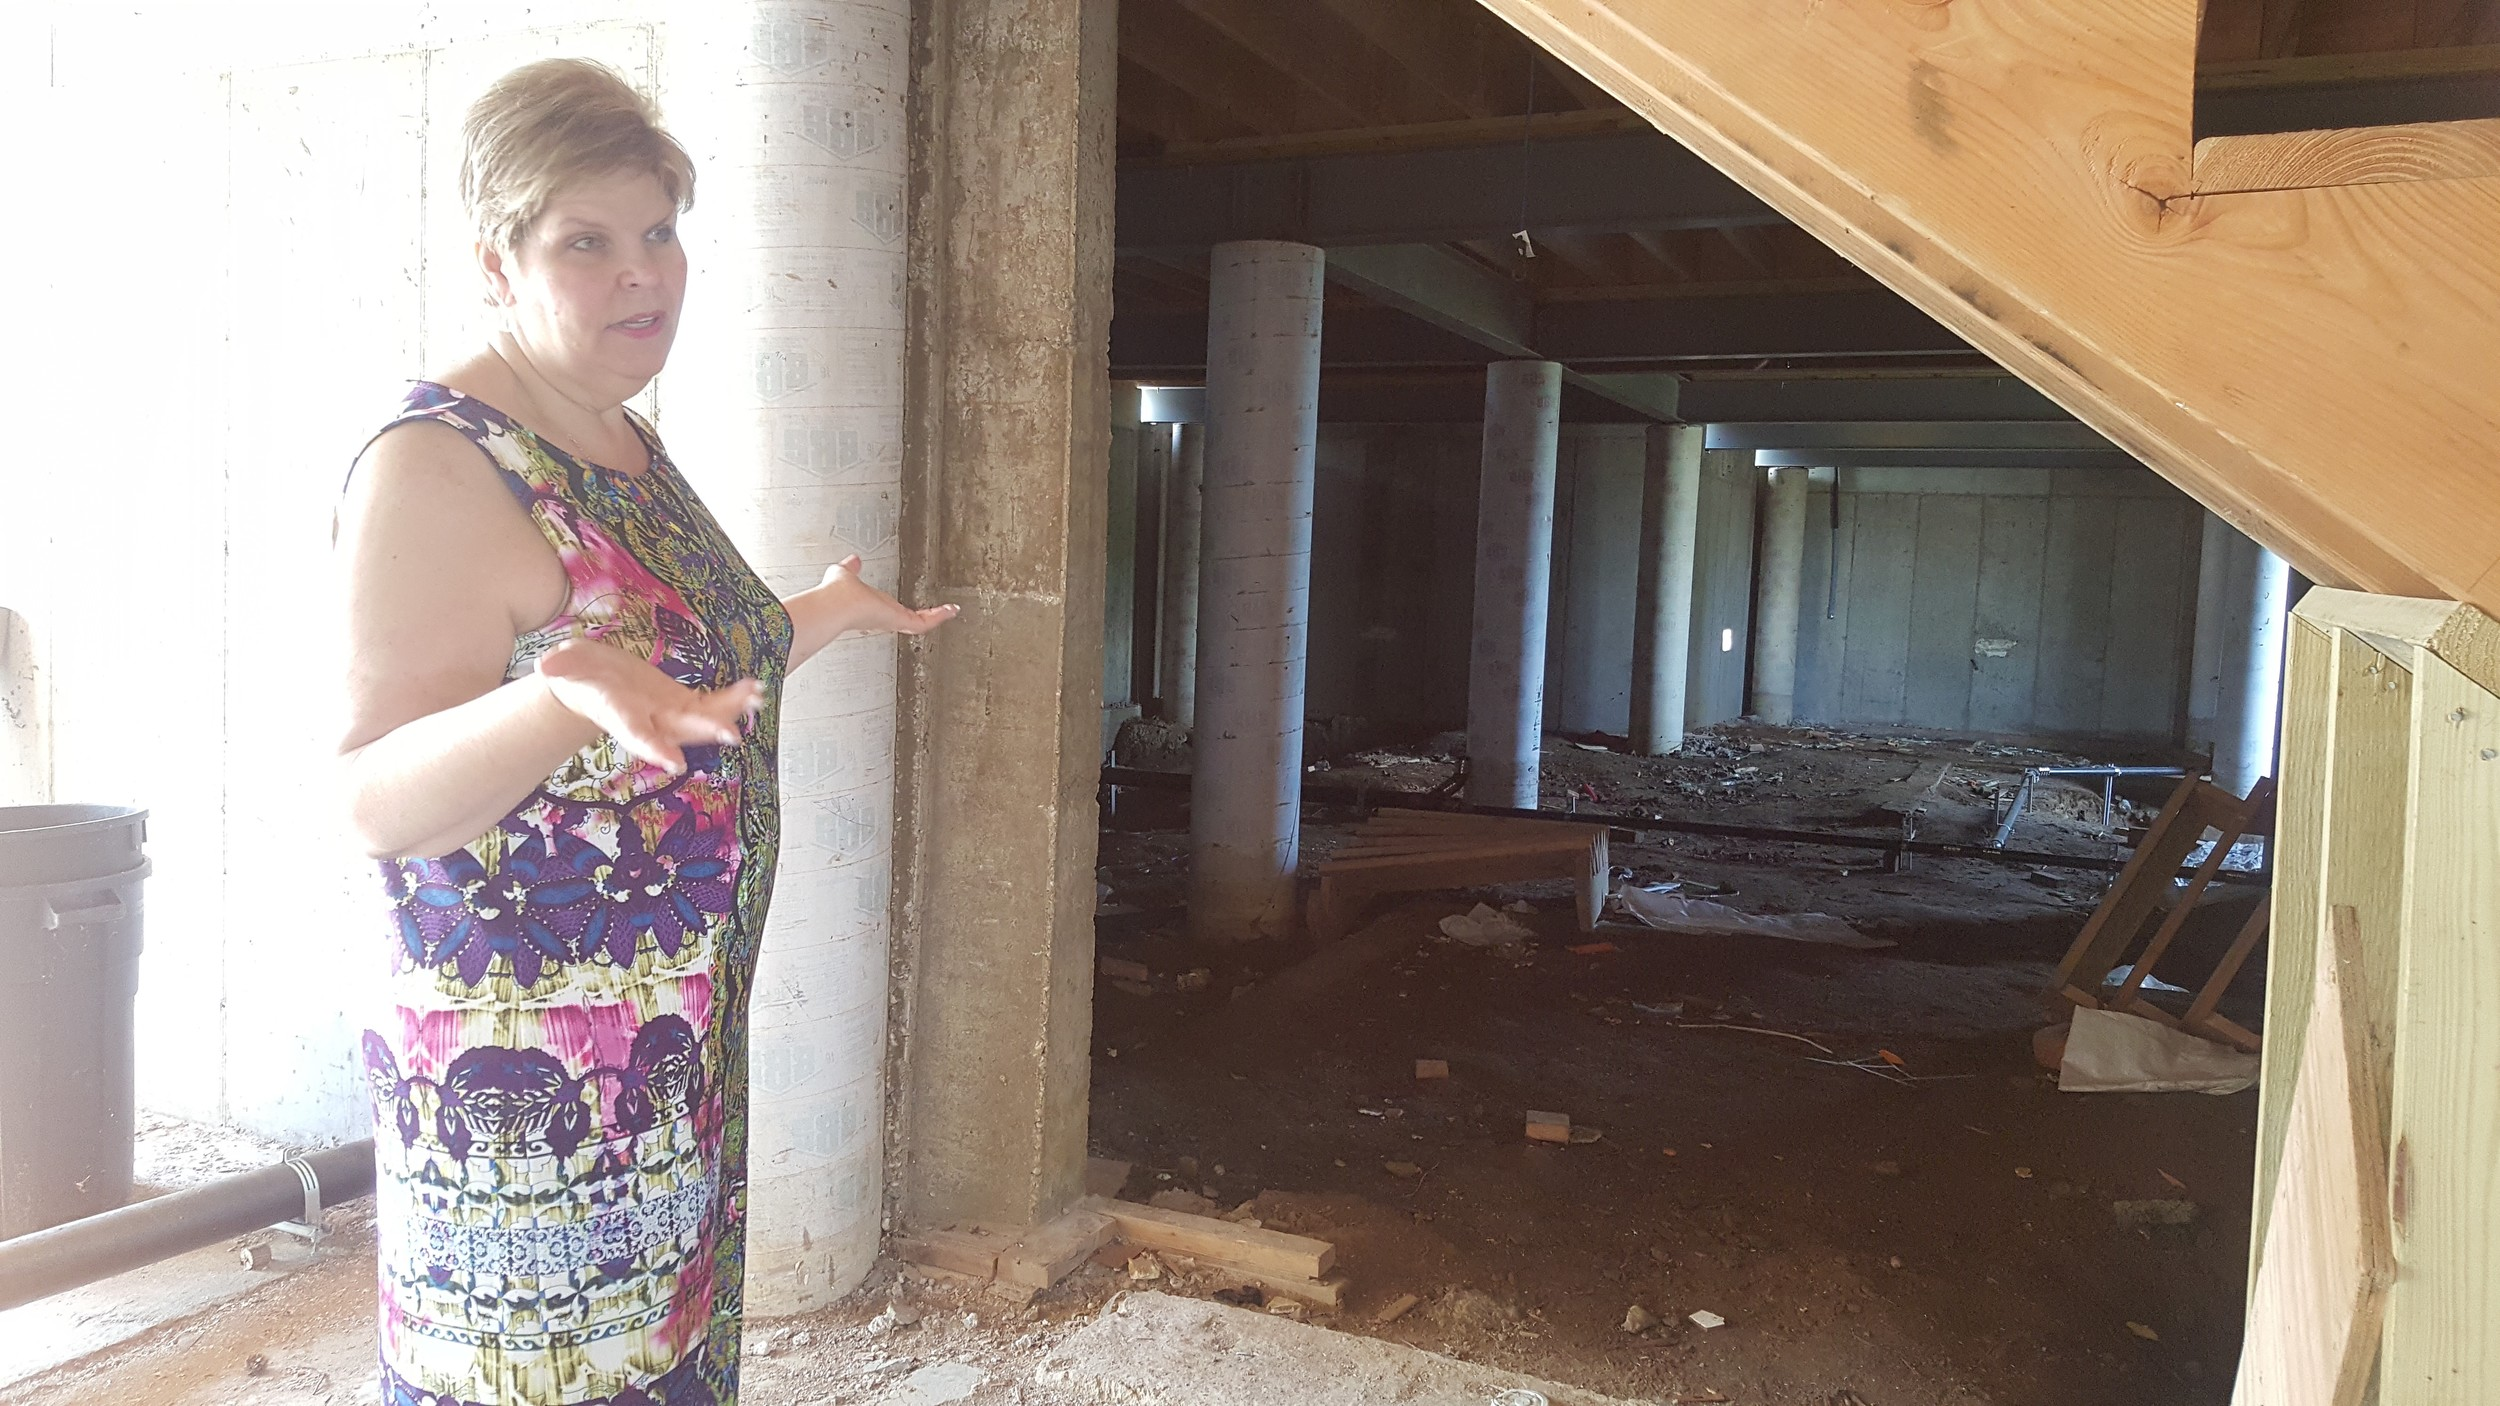 Freeport resident Ilona Jagnow stood in her mother's abandoned house, five years after SuperStorm Sandy ravaged Freeport. Jagnow has struggled with faulty contractors who have delayed the construction on the home.